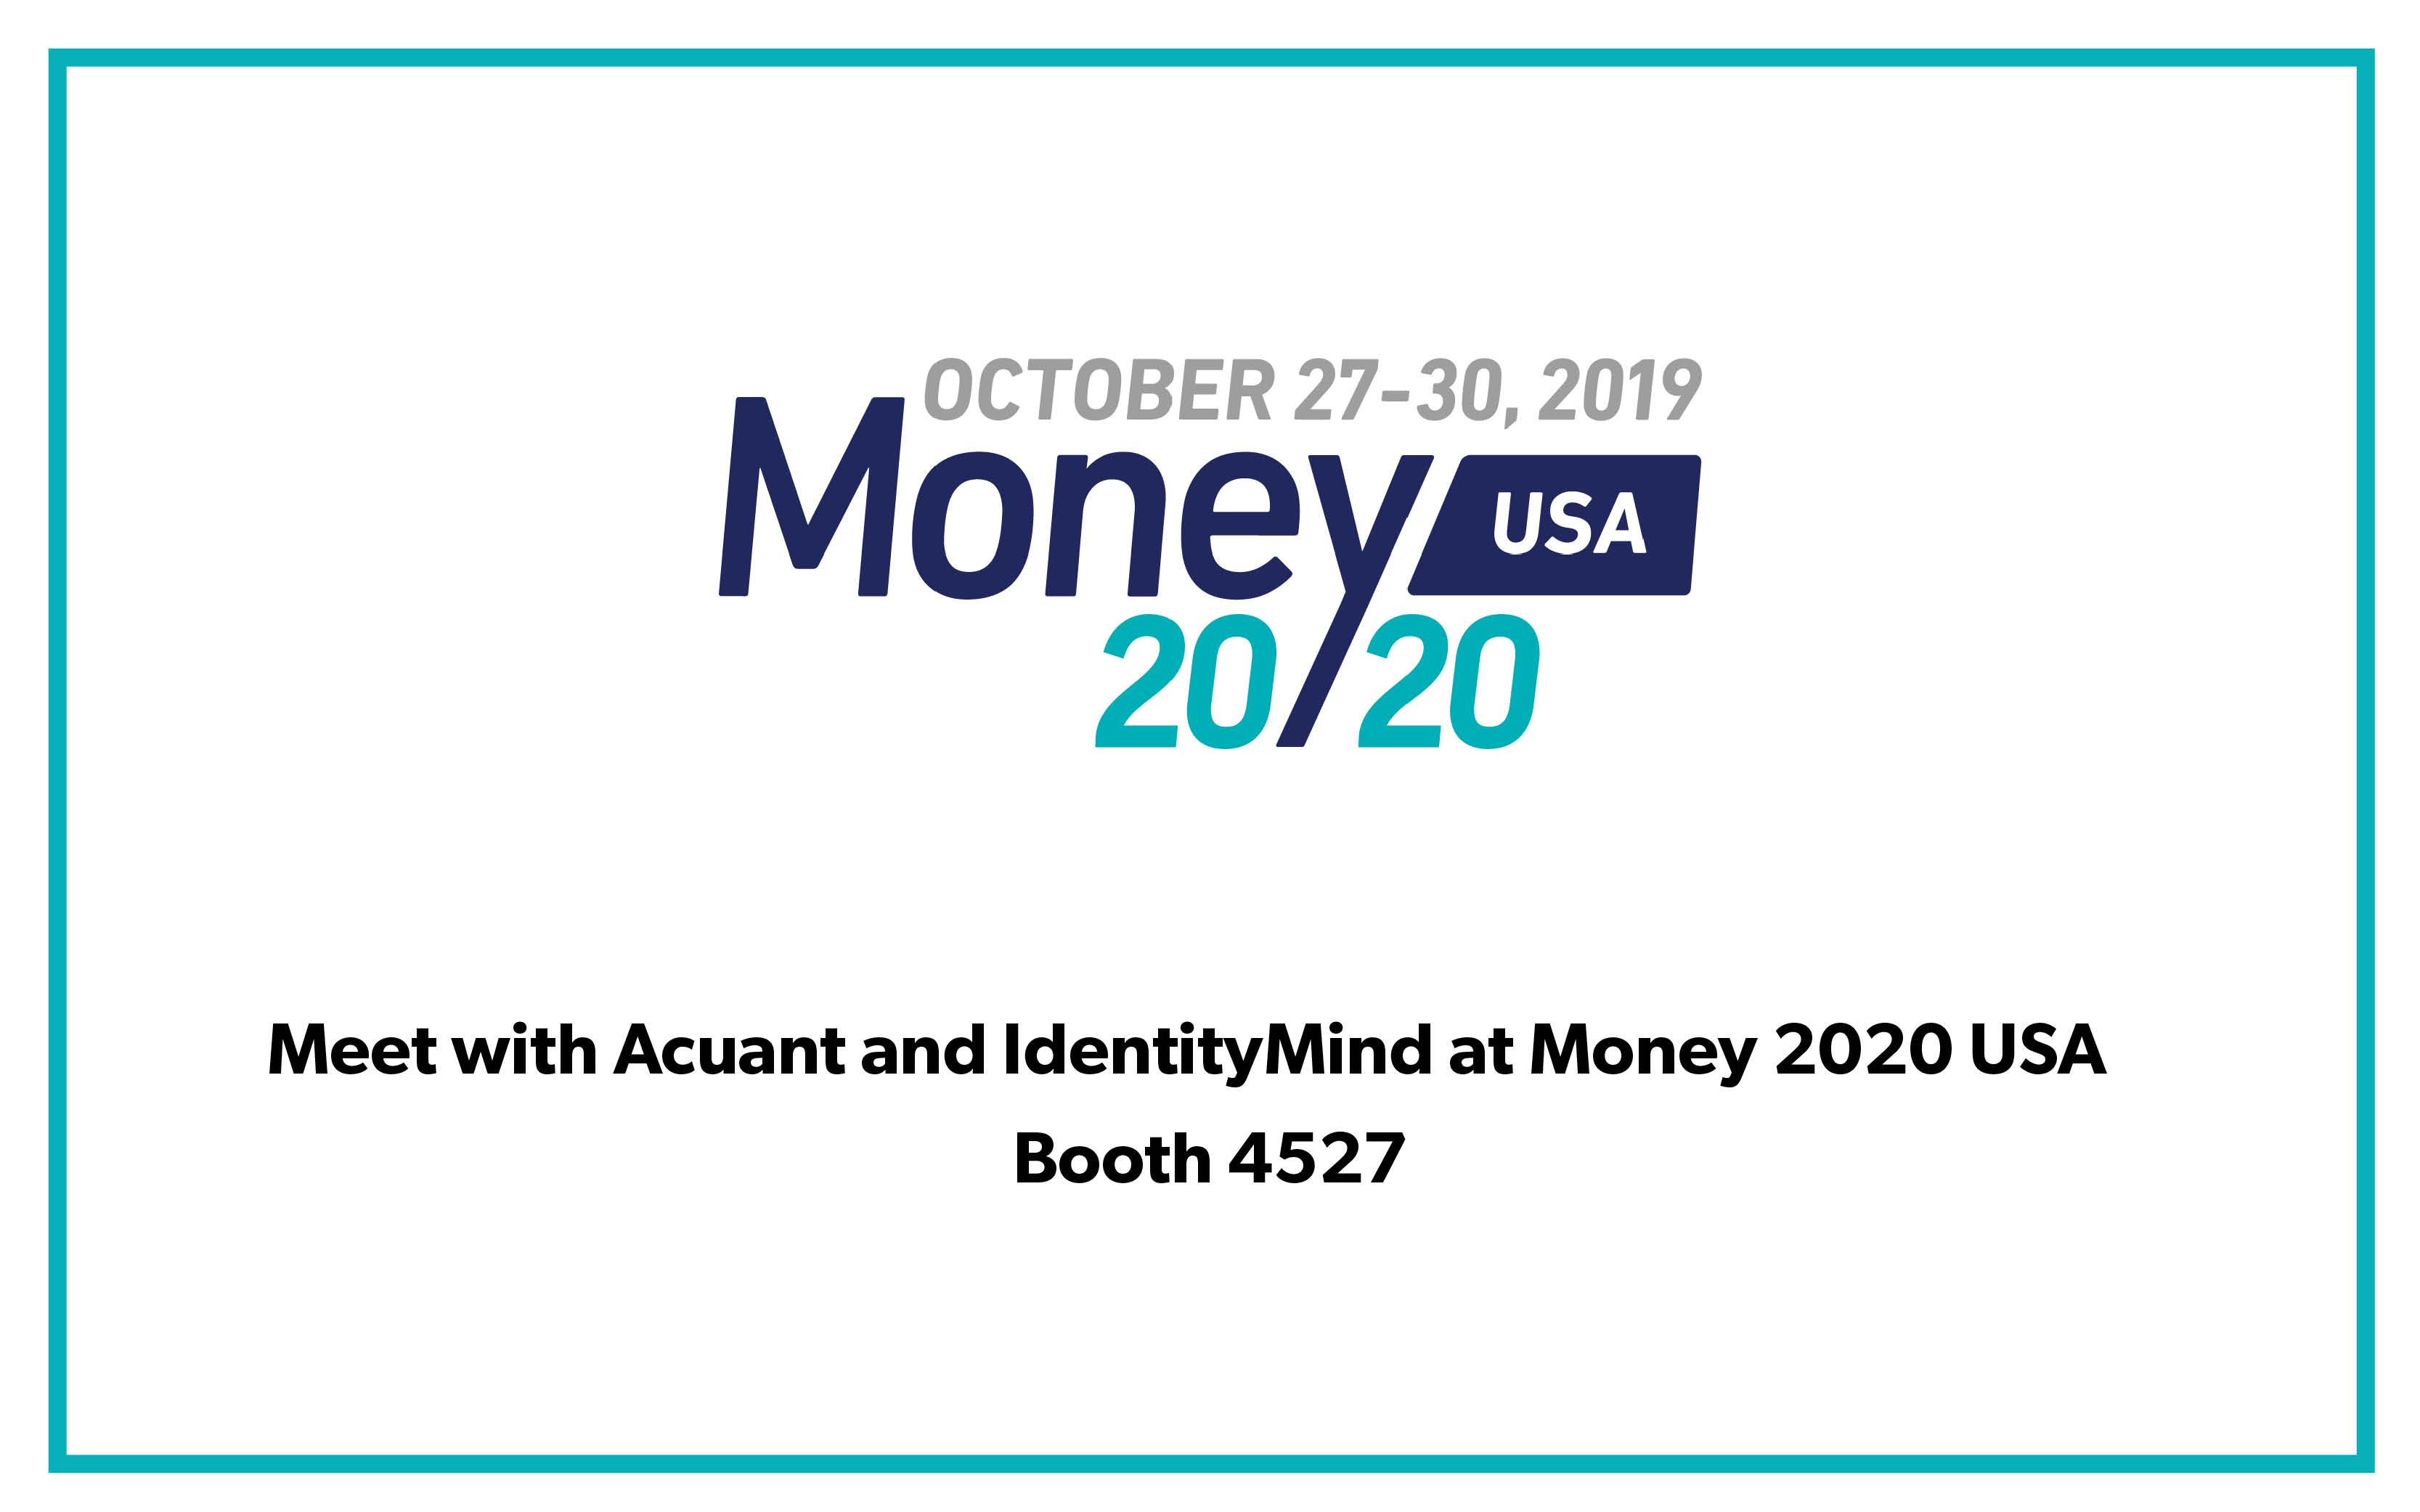 Meet Acuant and IdentityMind at Booth 4527 at Money 2020 USA